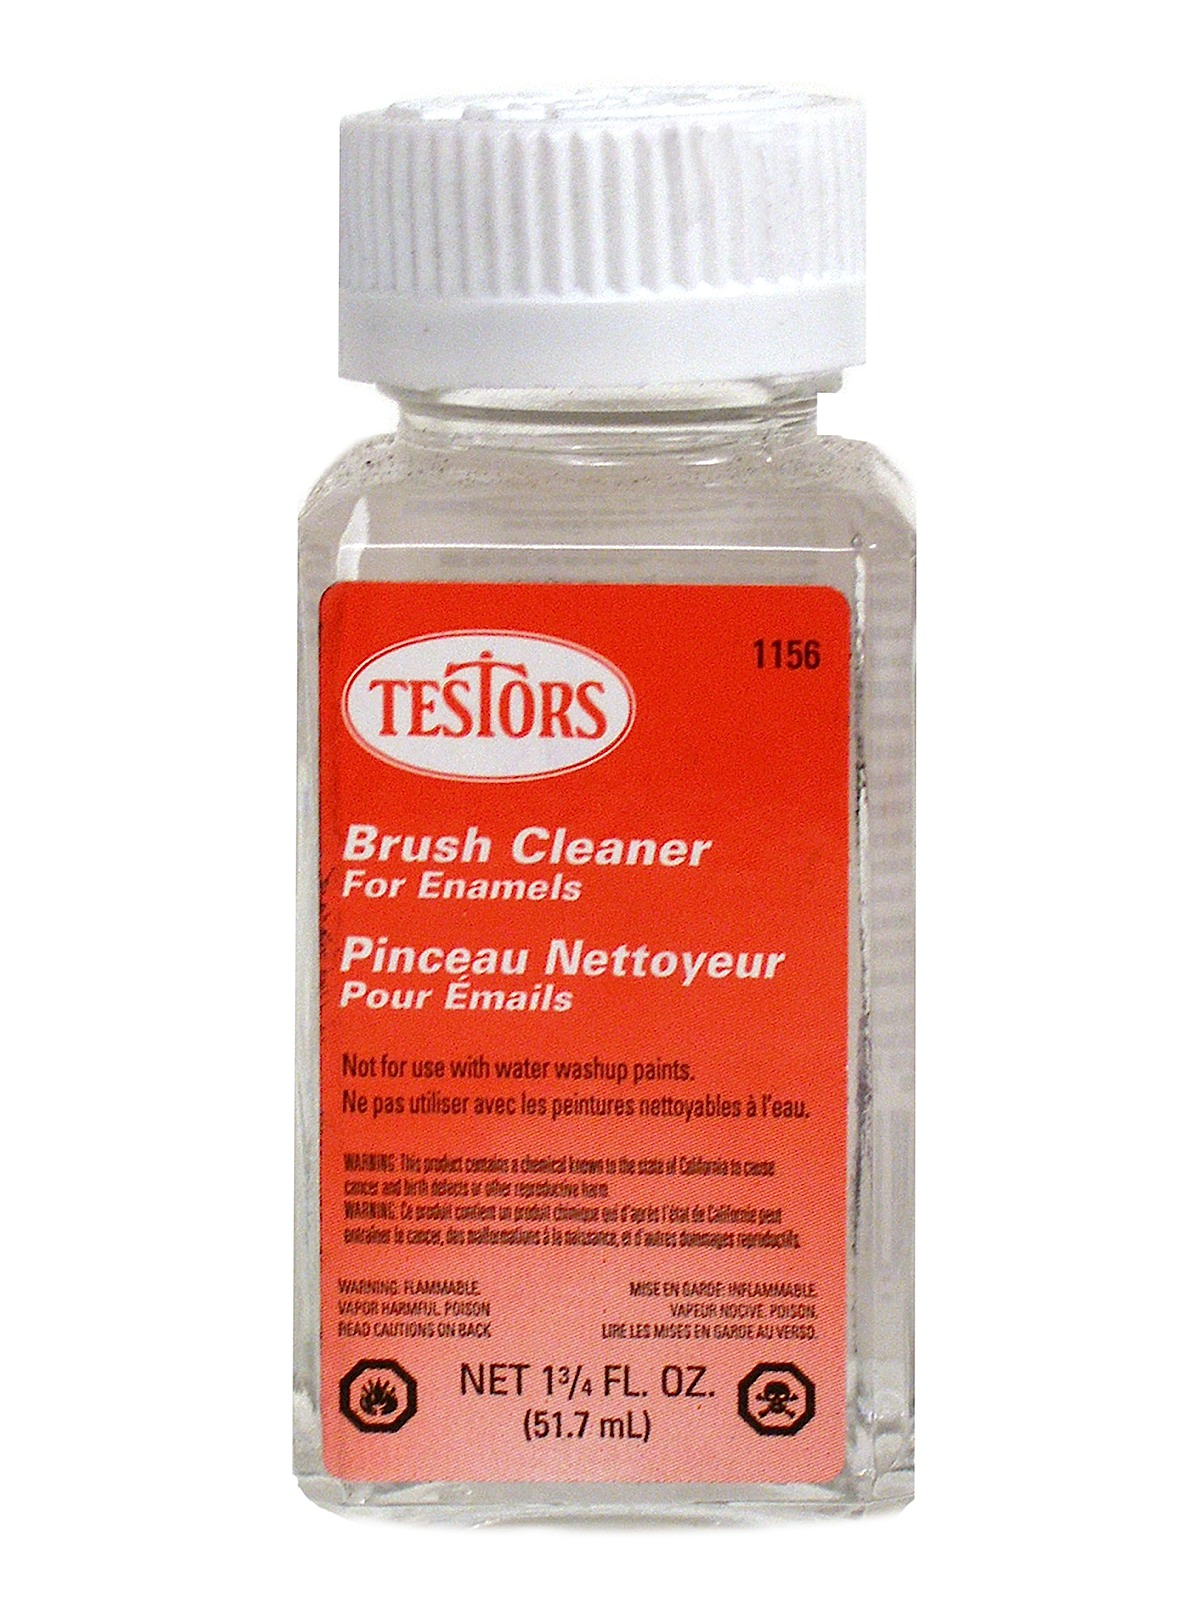 Brush Cleaner for Enamels